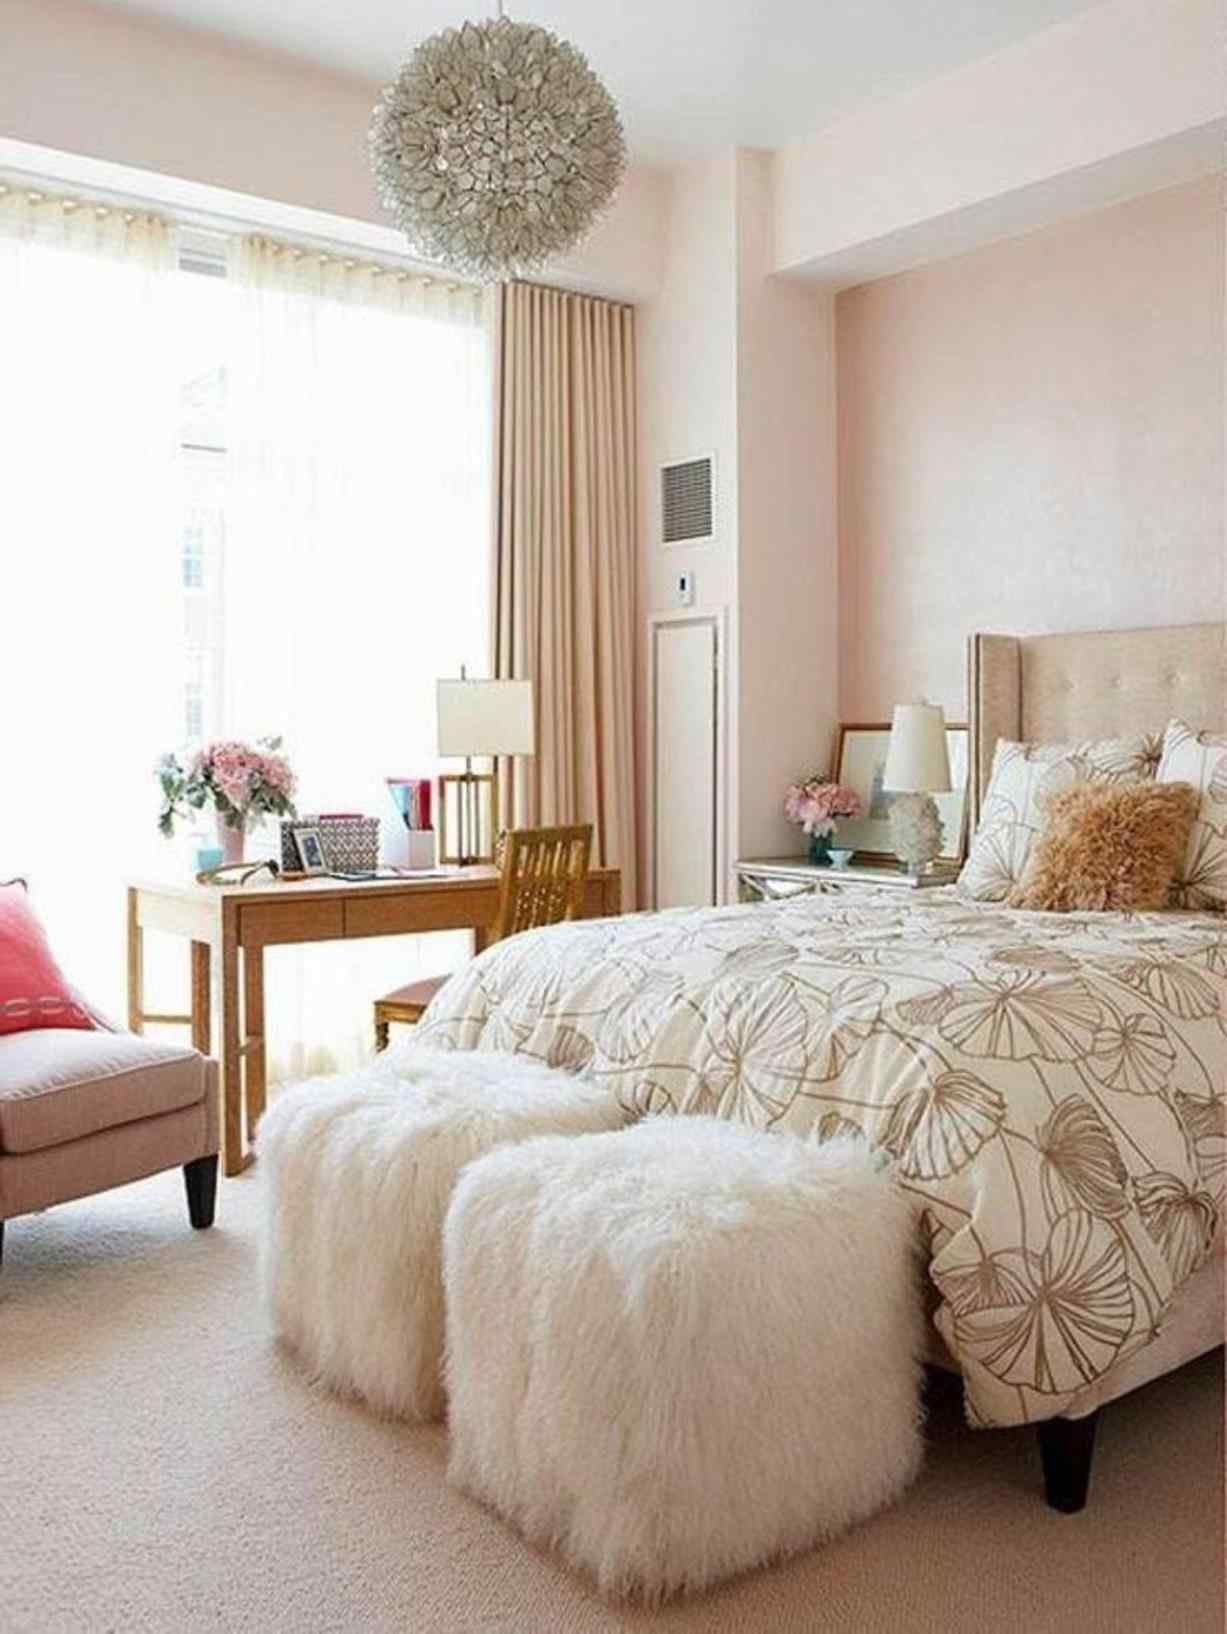 Top beautiful female room decor ideas for cozy inspiration in